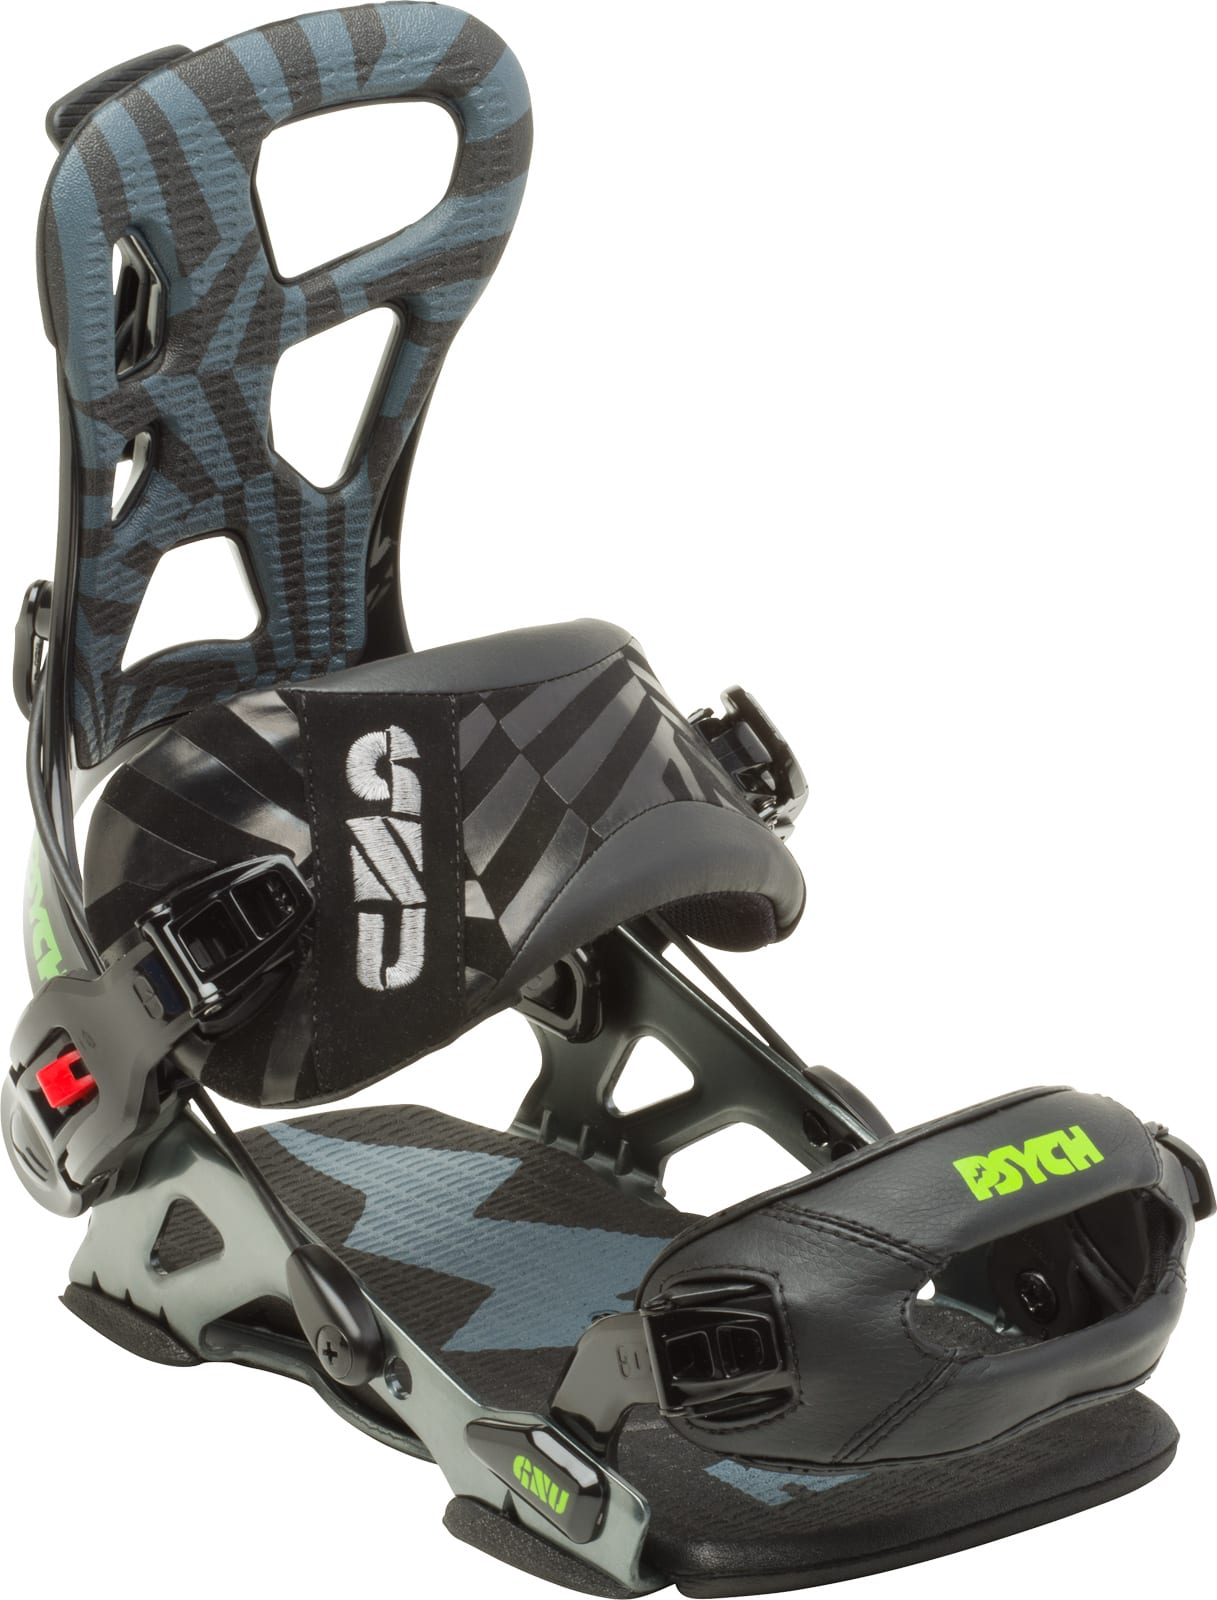 On Sale Gnu Psych Snowboard Bindings Up To 45 Off